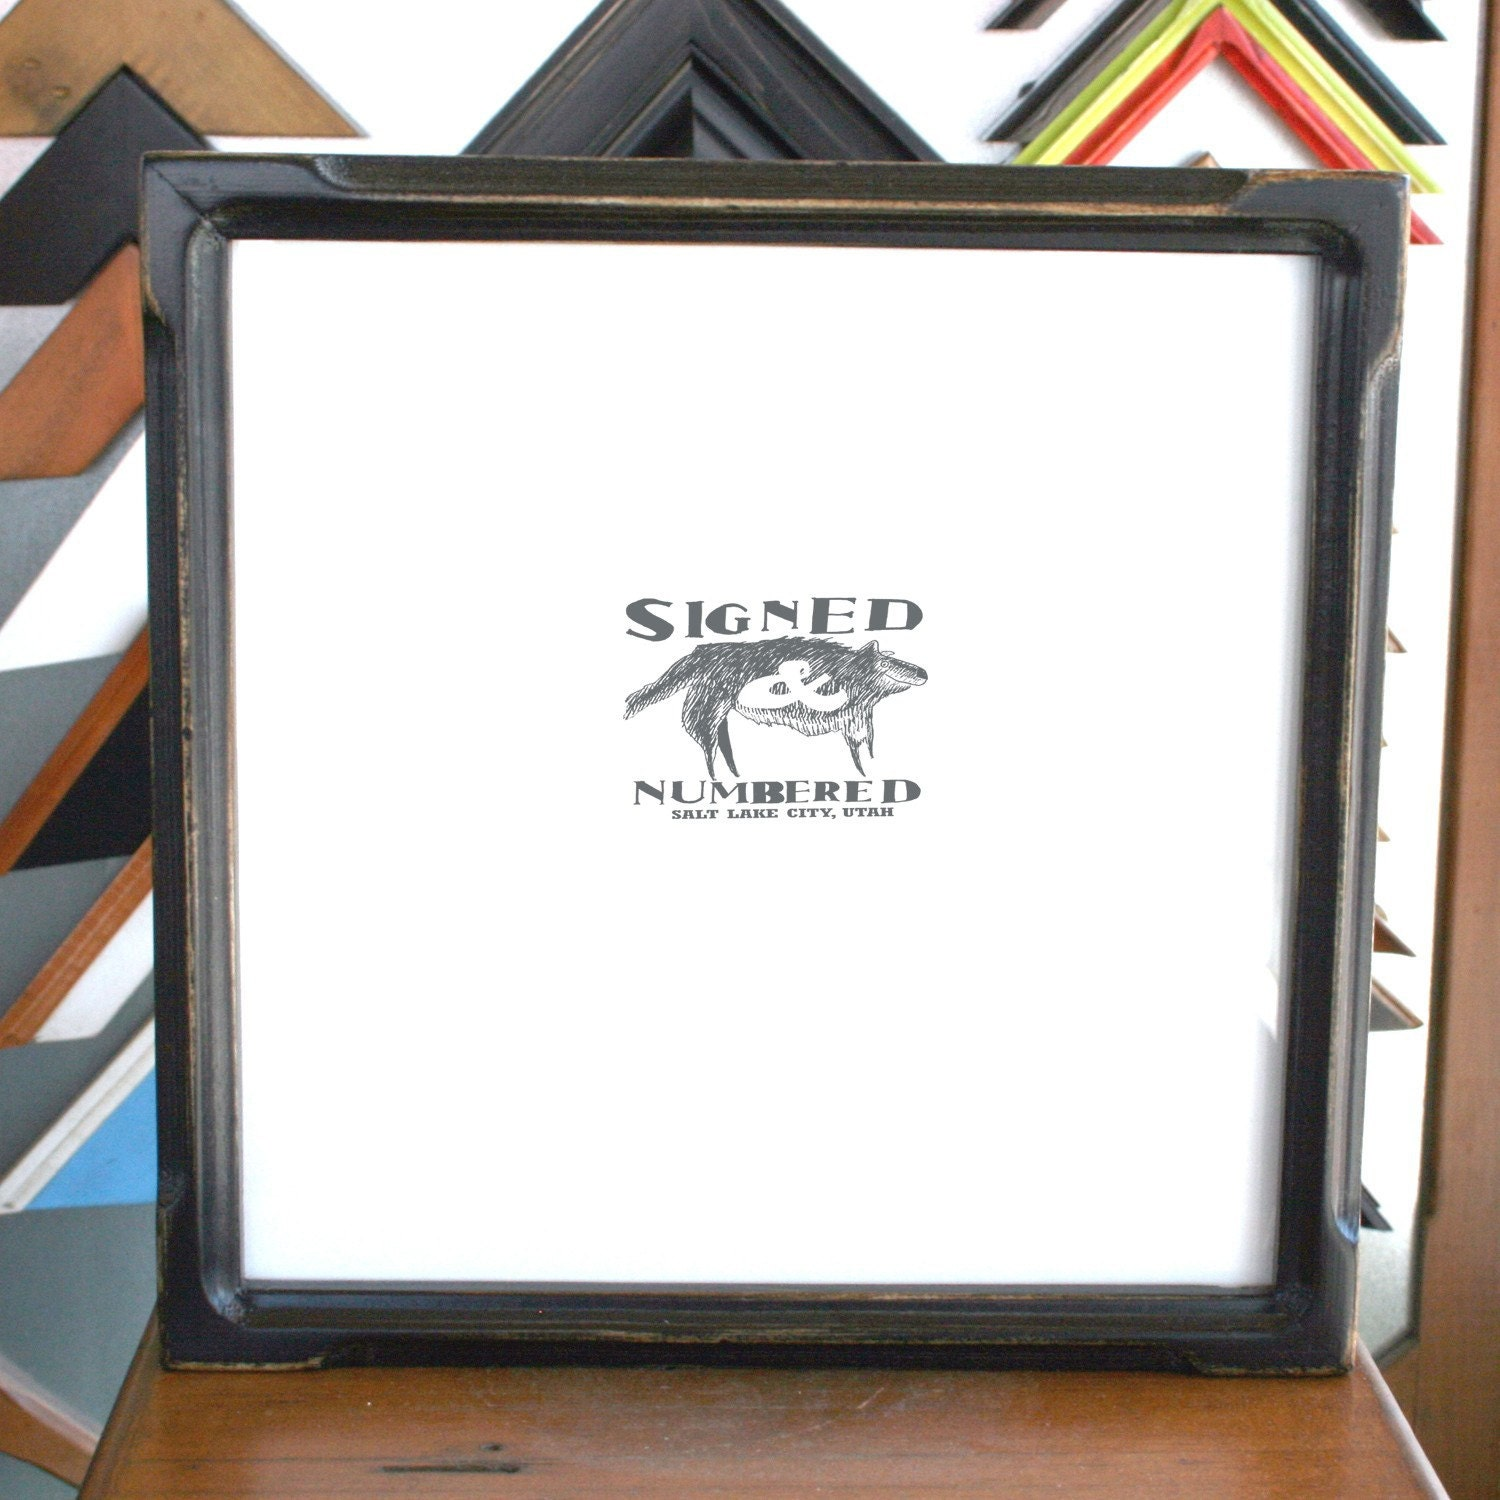 10x10 square picture frame with vintage black finish in deep bones style